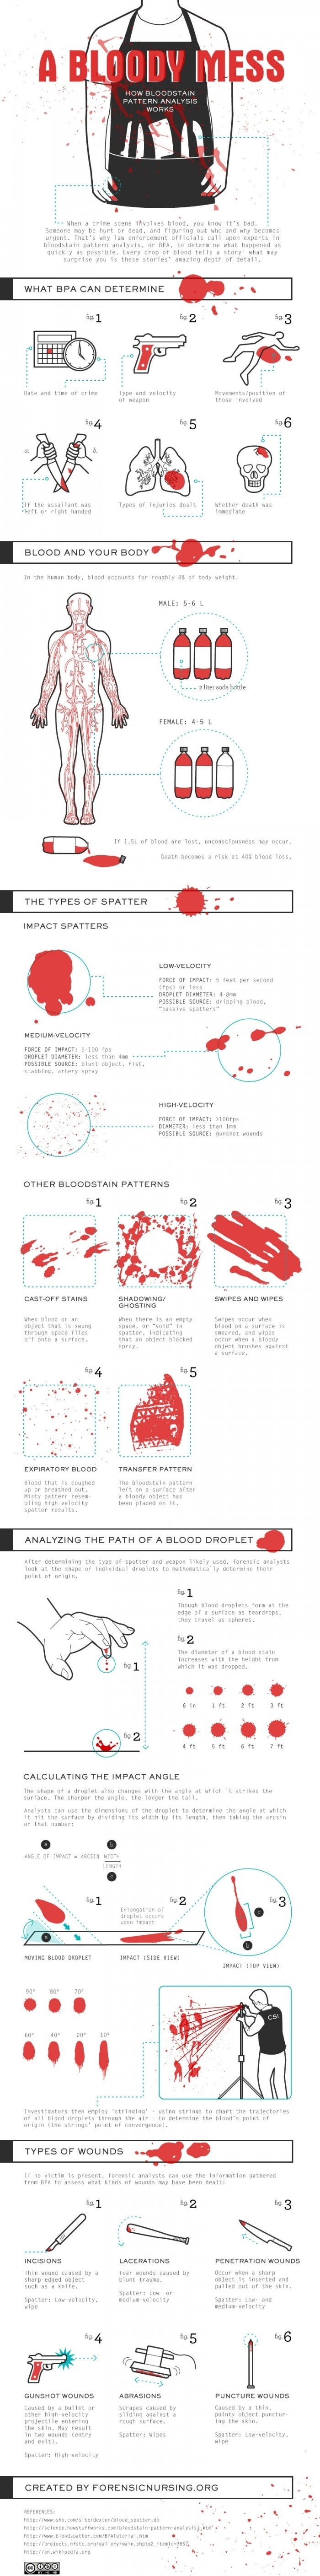 A Bloody Mess, An Infographic